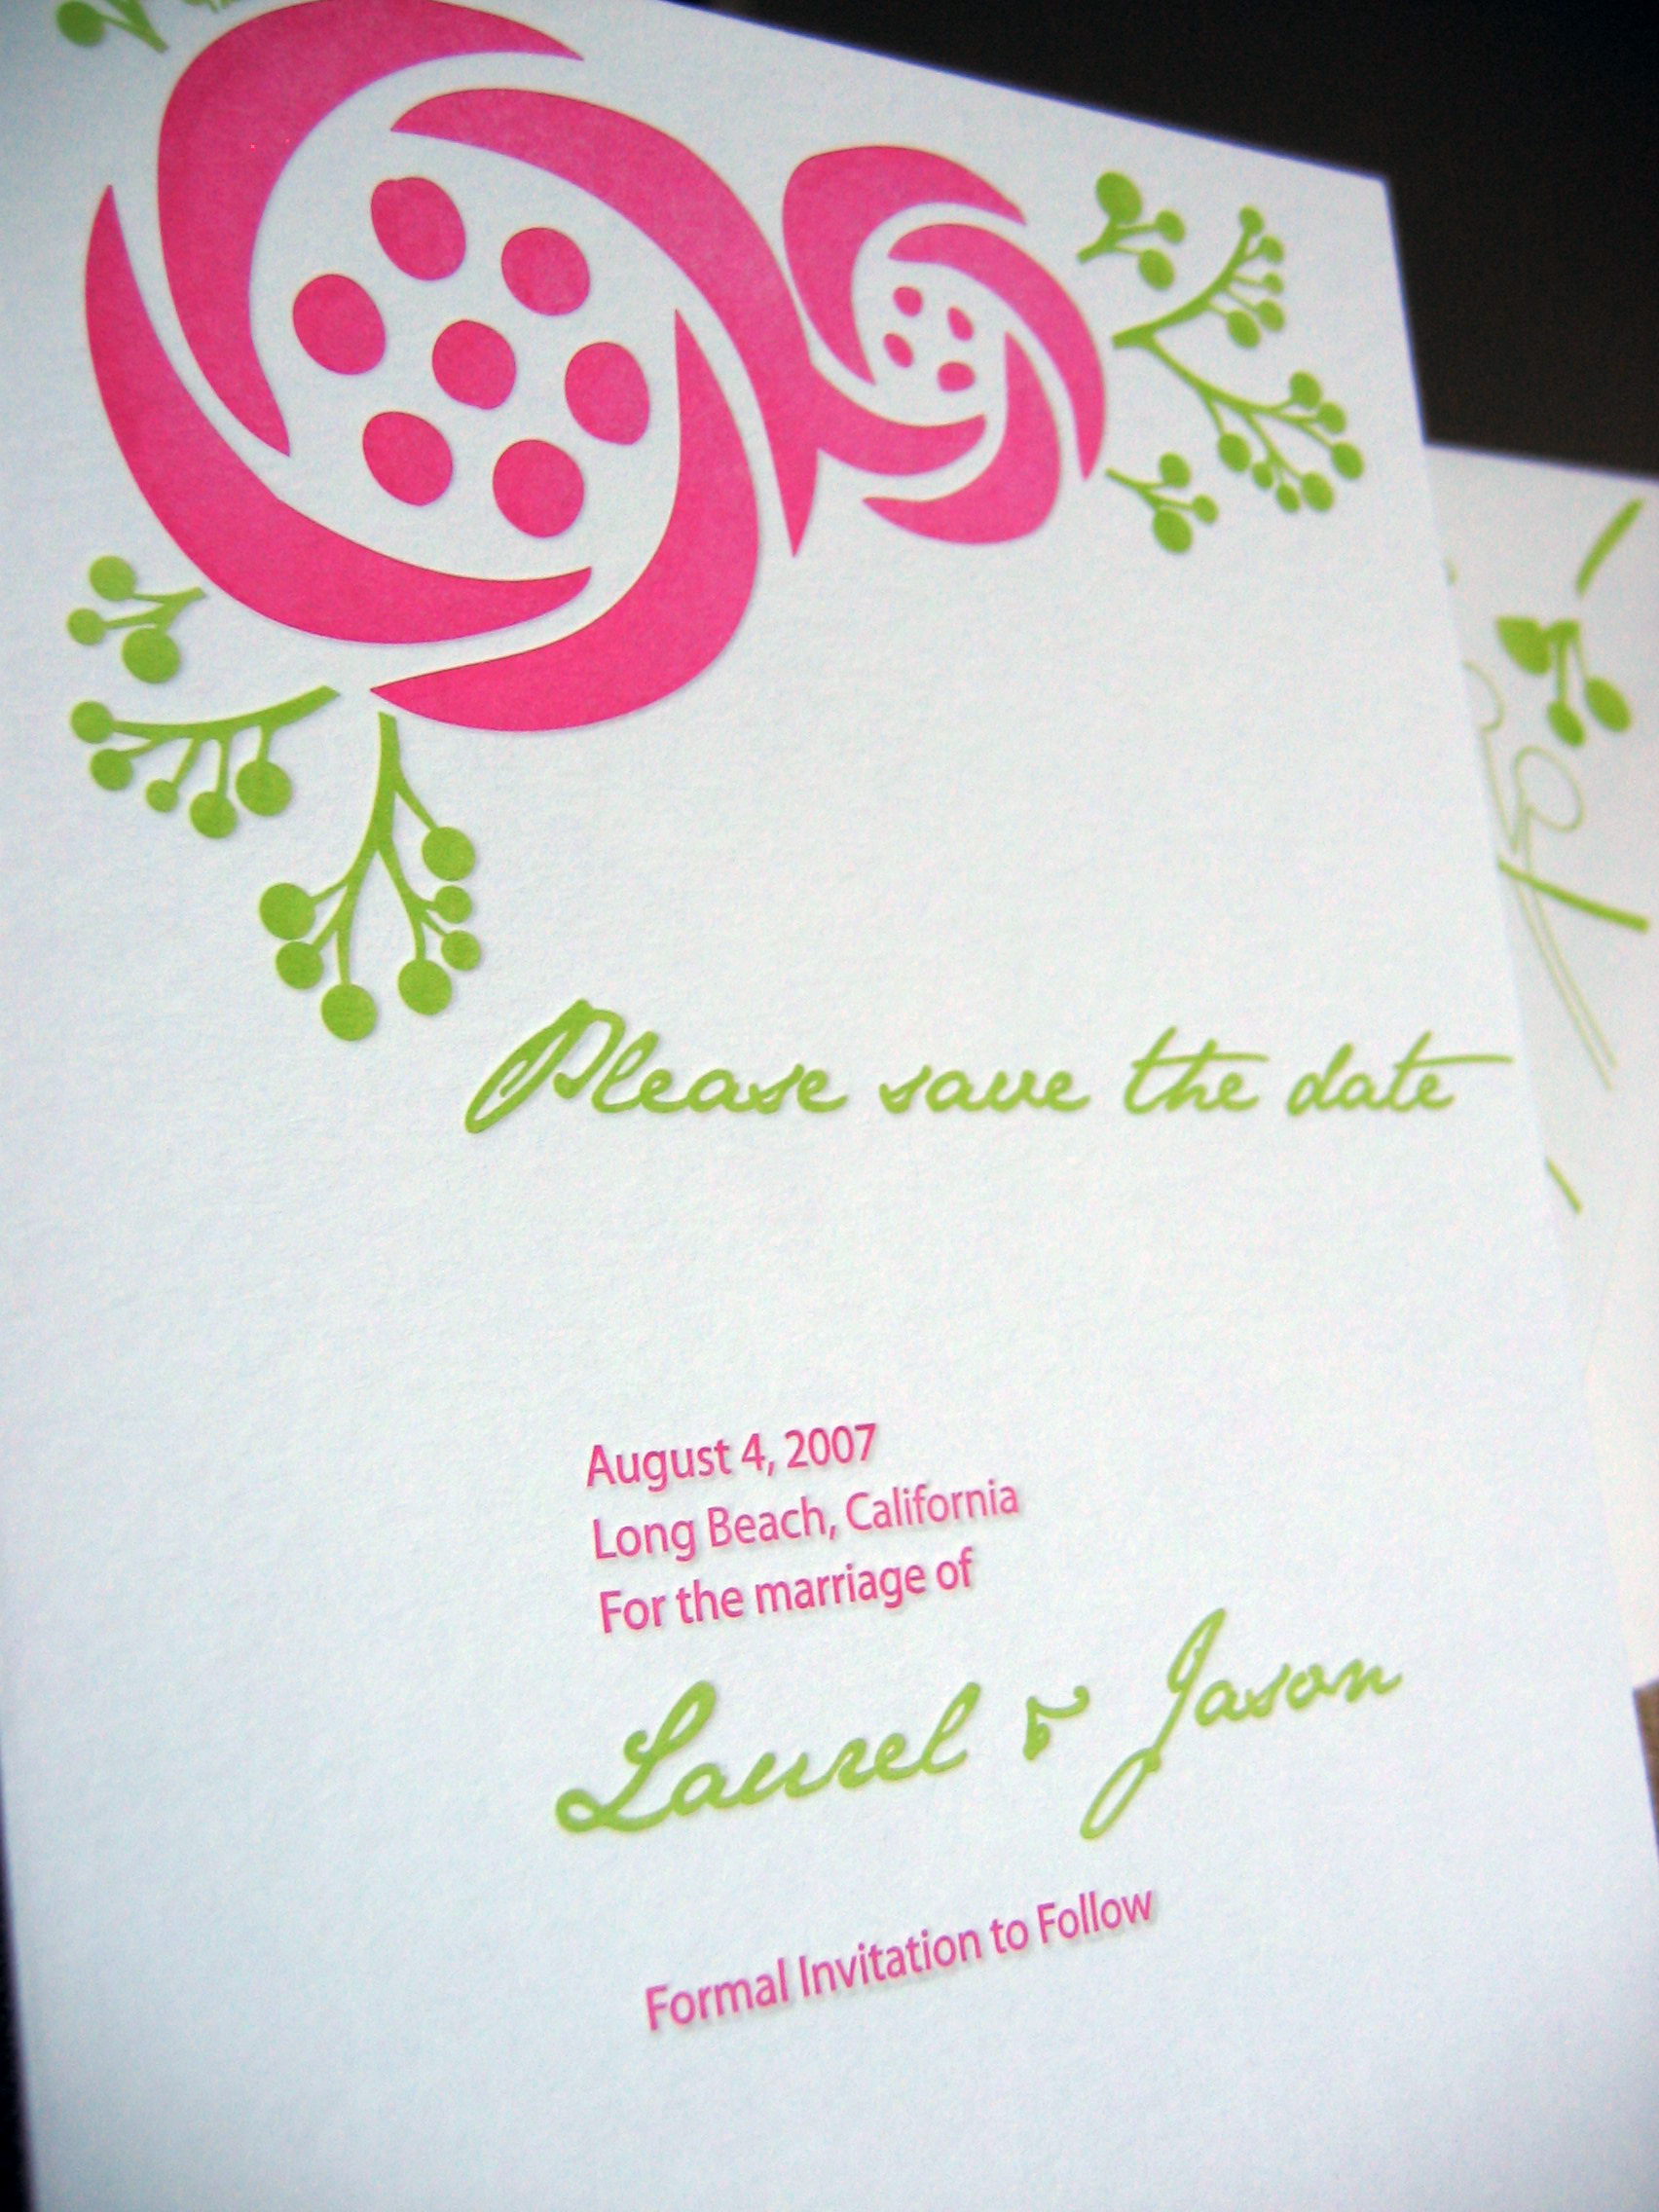 The, Letterpress, Save, Date, Sugar plum invitations